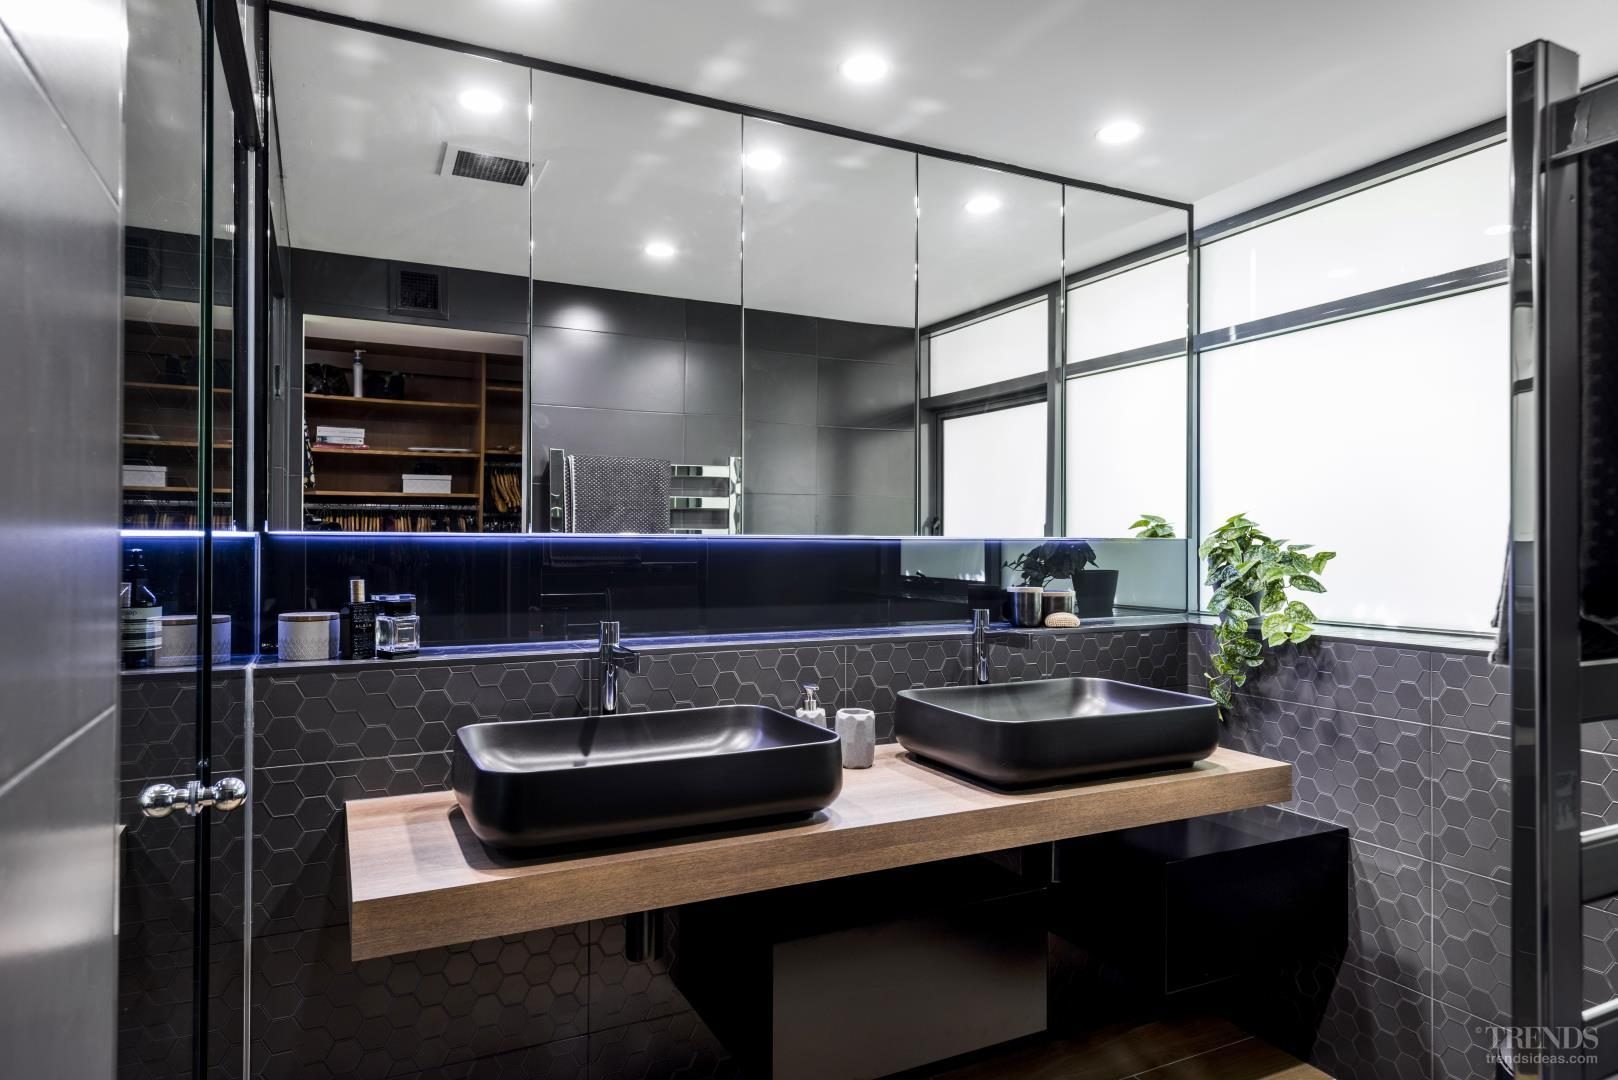 This ensuite renovation resulted in a space designed for a wellness lifestyle